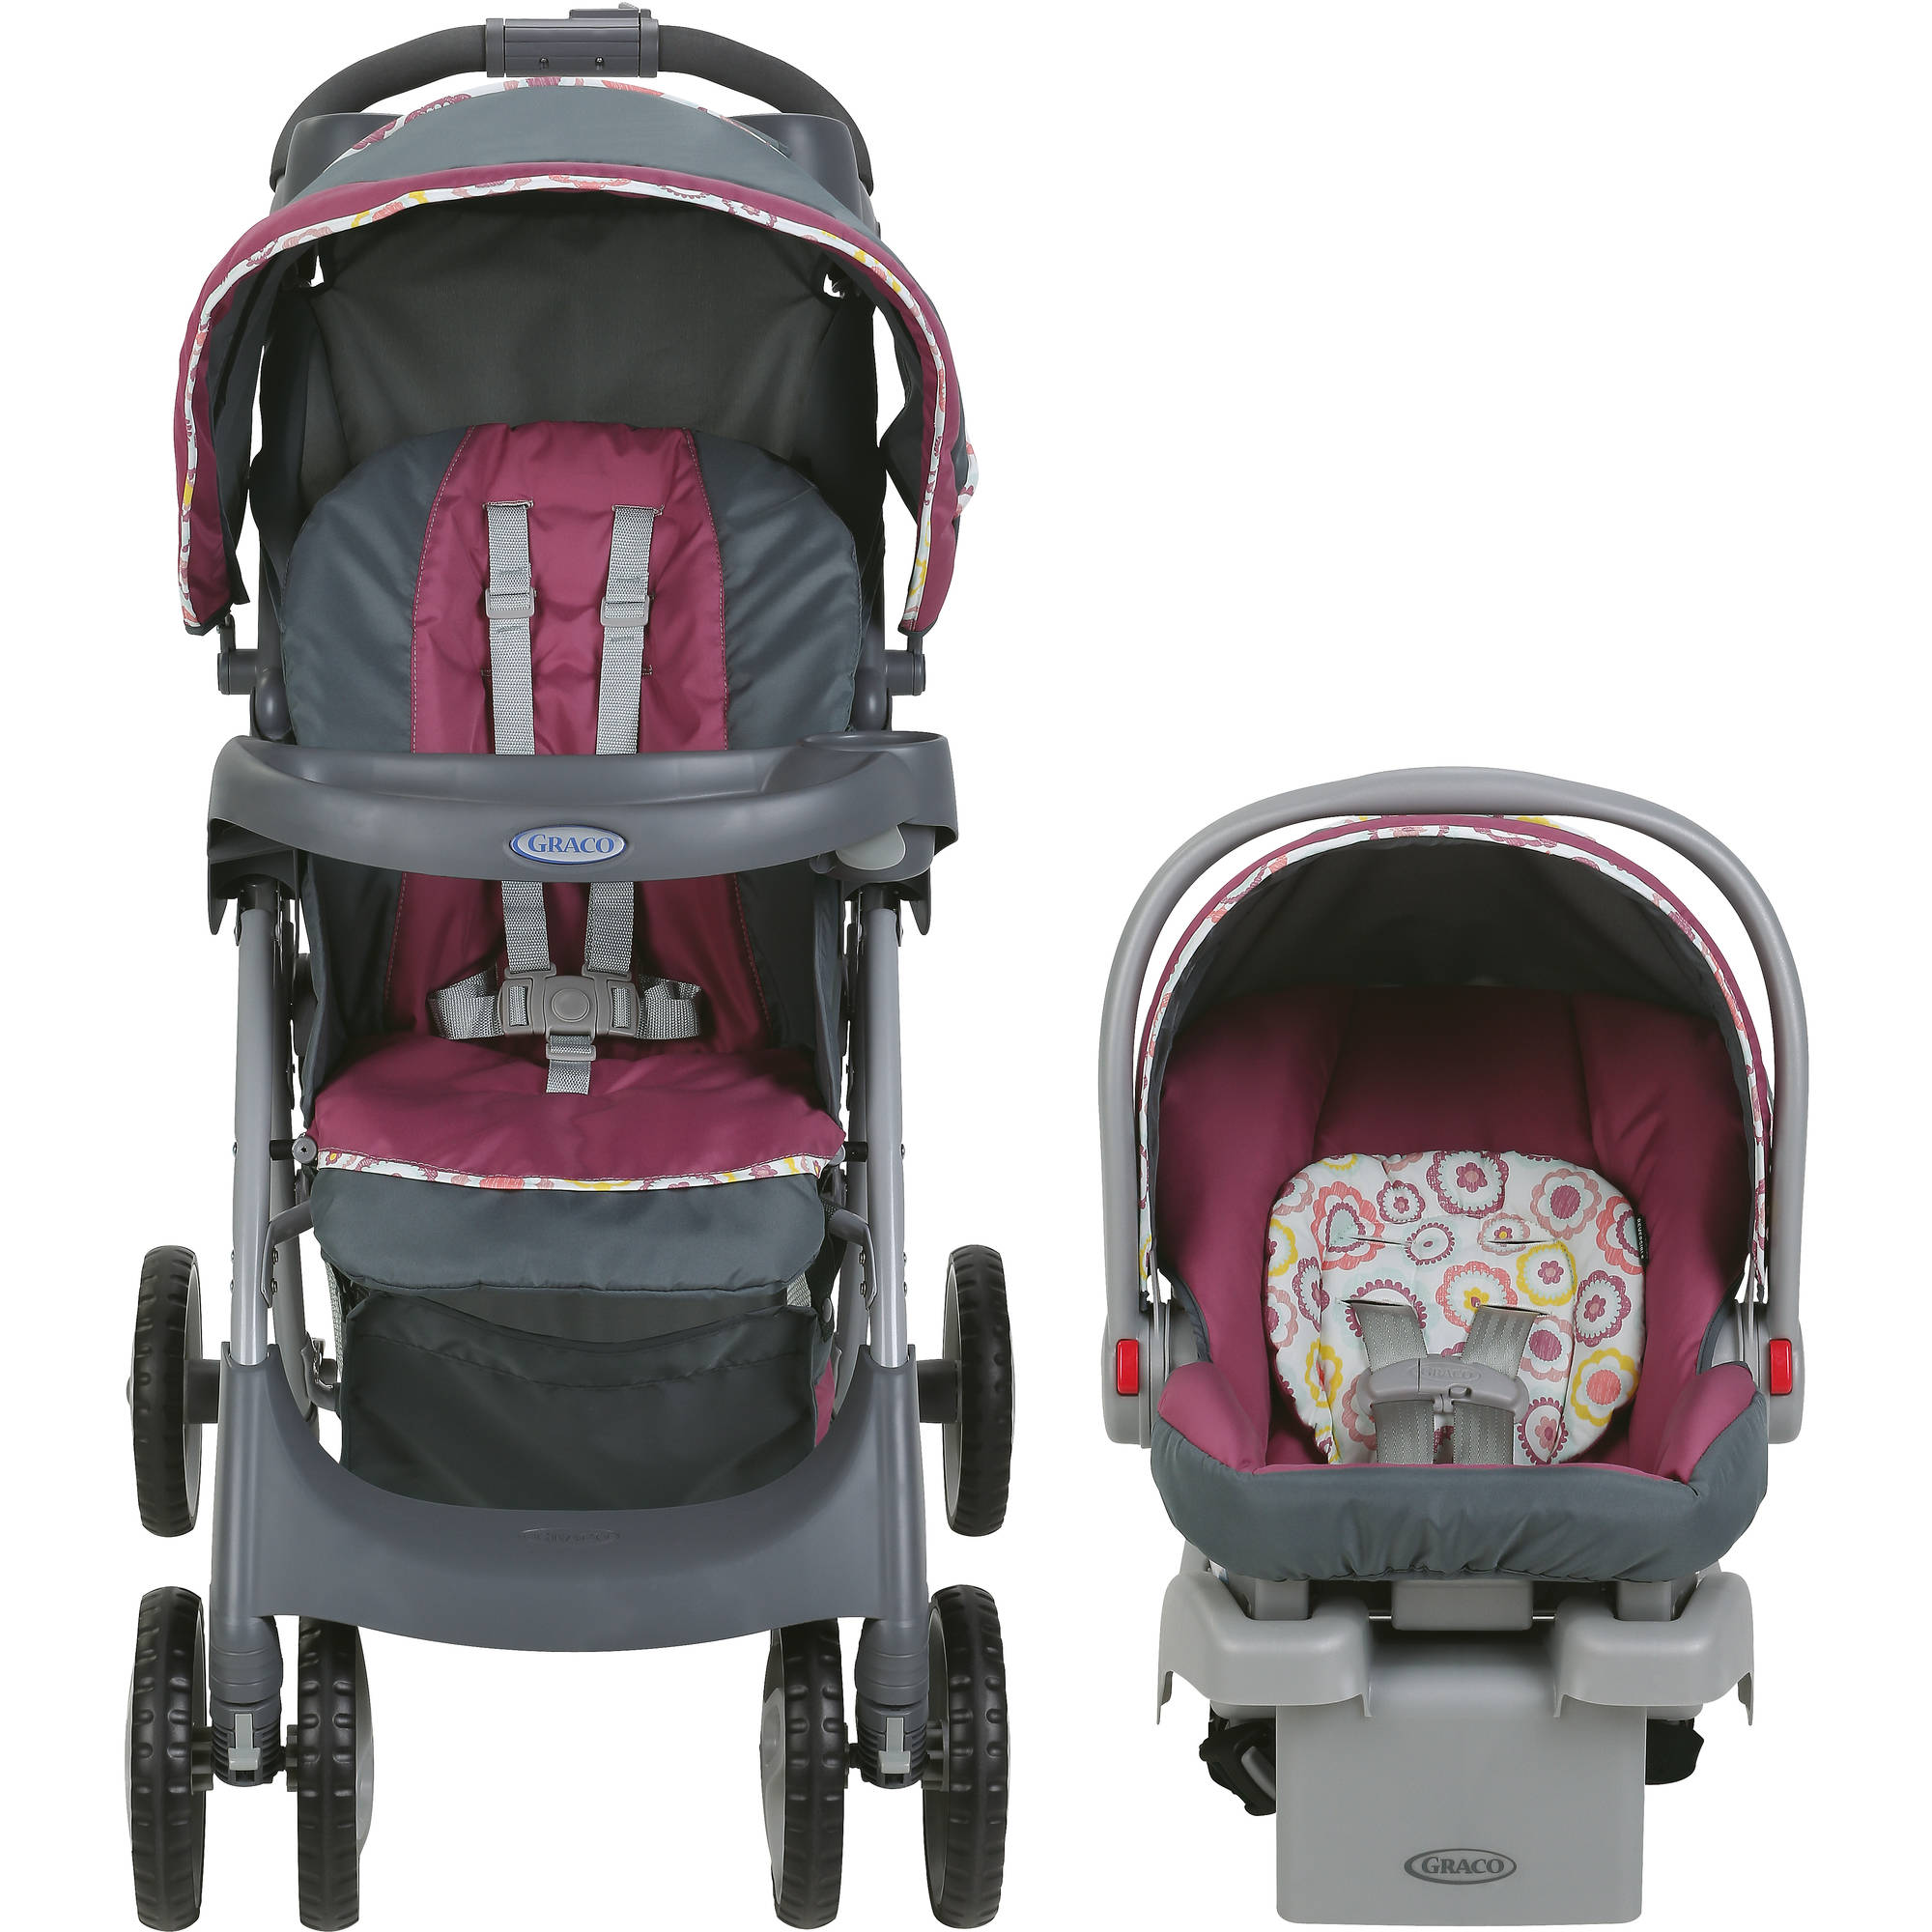 Graco fy Cruiser Connect Stroller Travel System with SnugRide Connect 30 Infant Car Seat Daisy Walmart